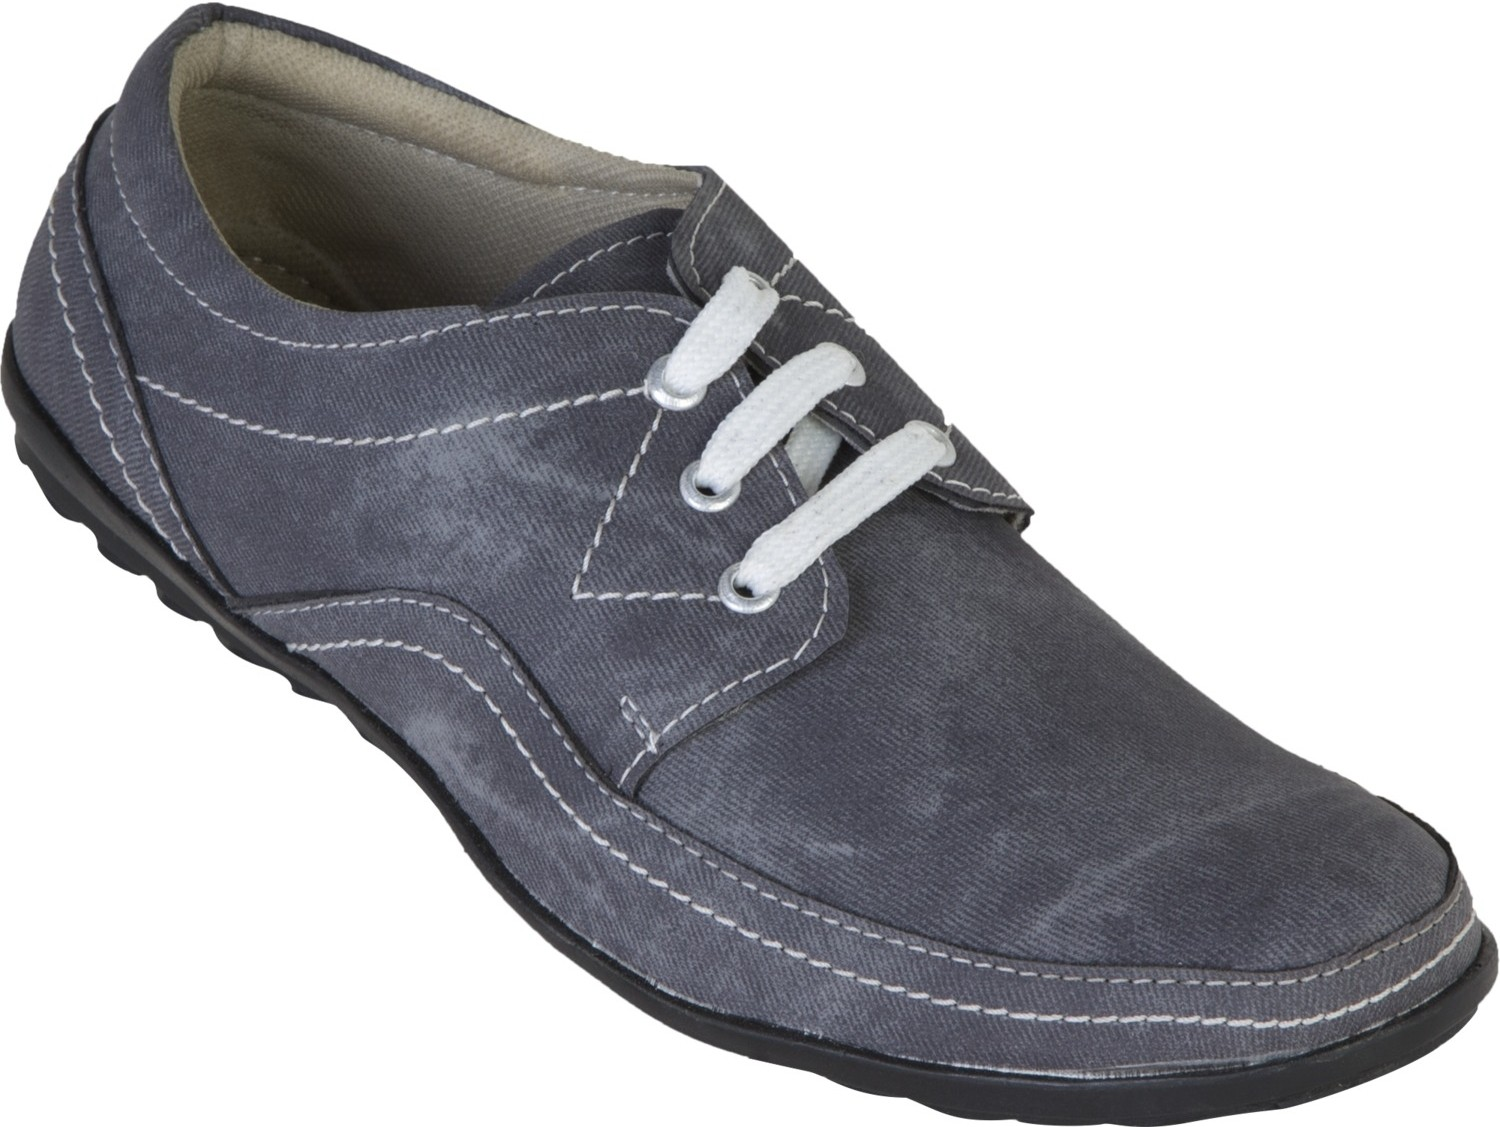 Zovi Grey Casual with White Lacing Sneakers(Grey)